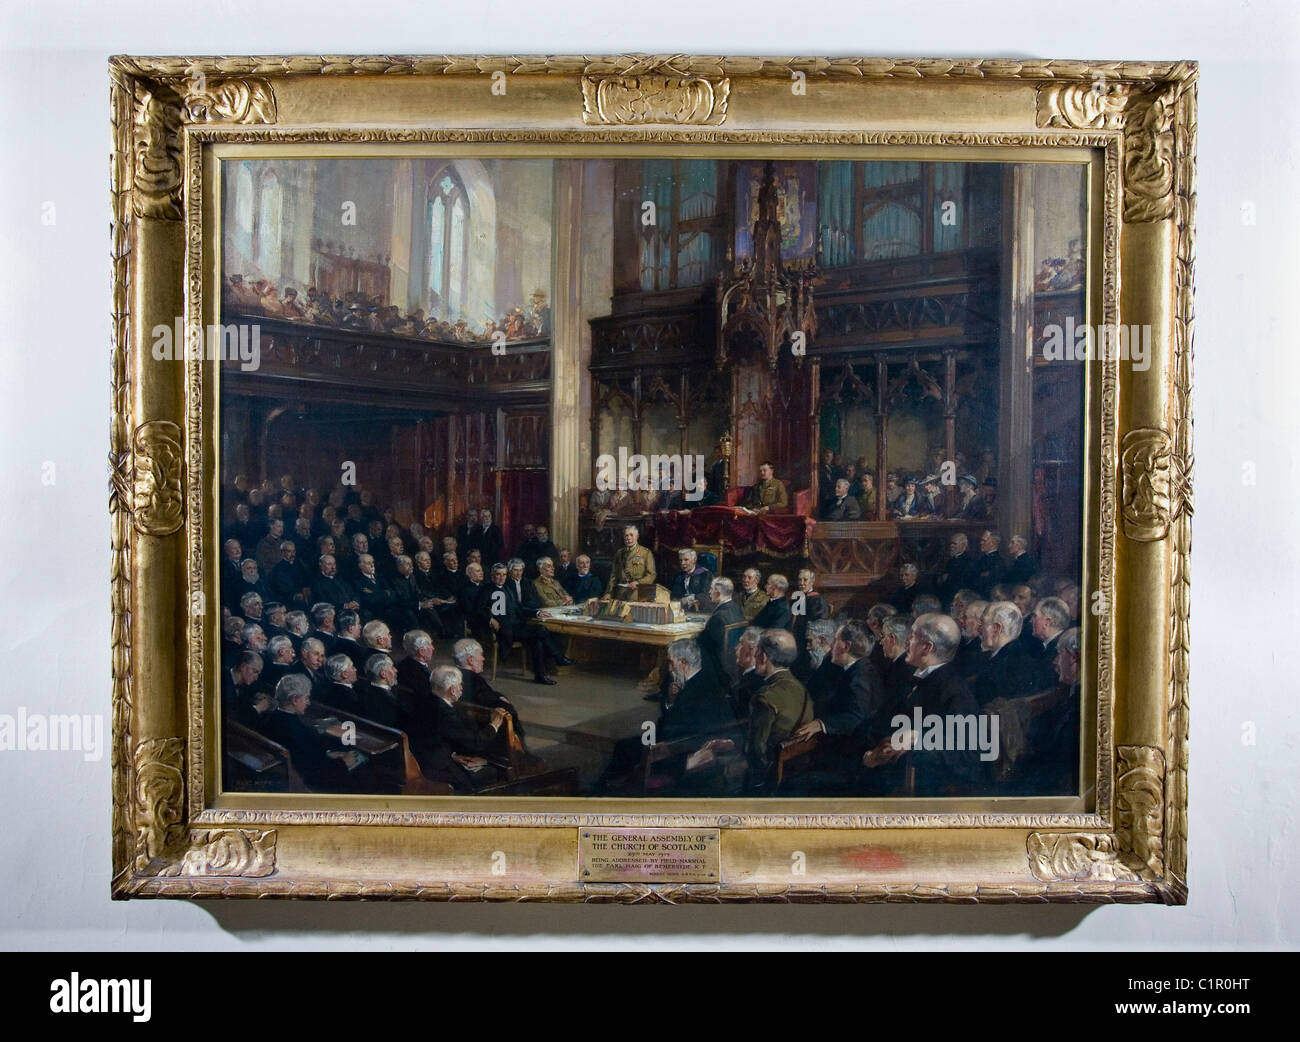 A painting depicting The General Assembly of the Church of Scotland being addressed by Field Marshal The Earl Haig - Stock Image